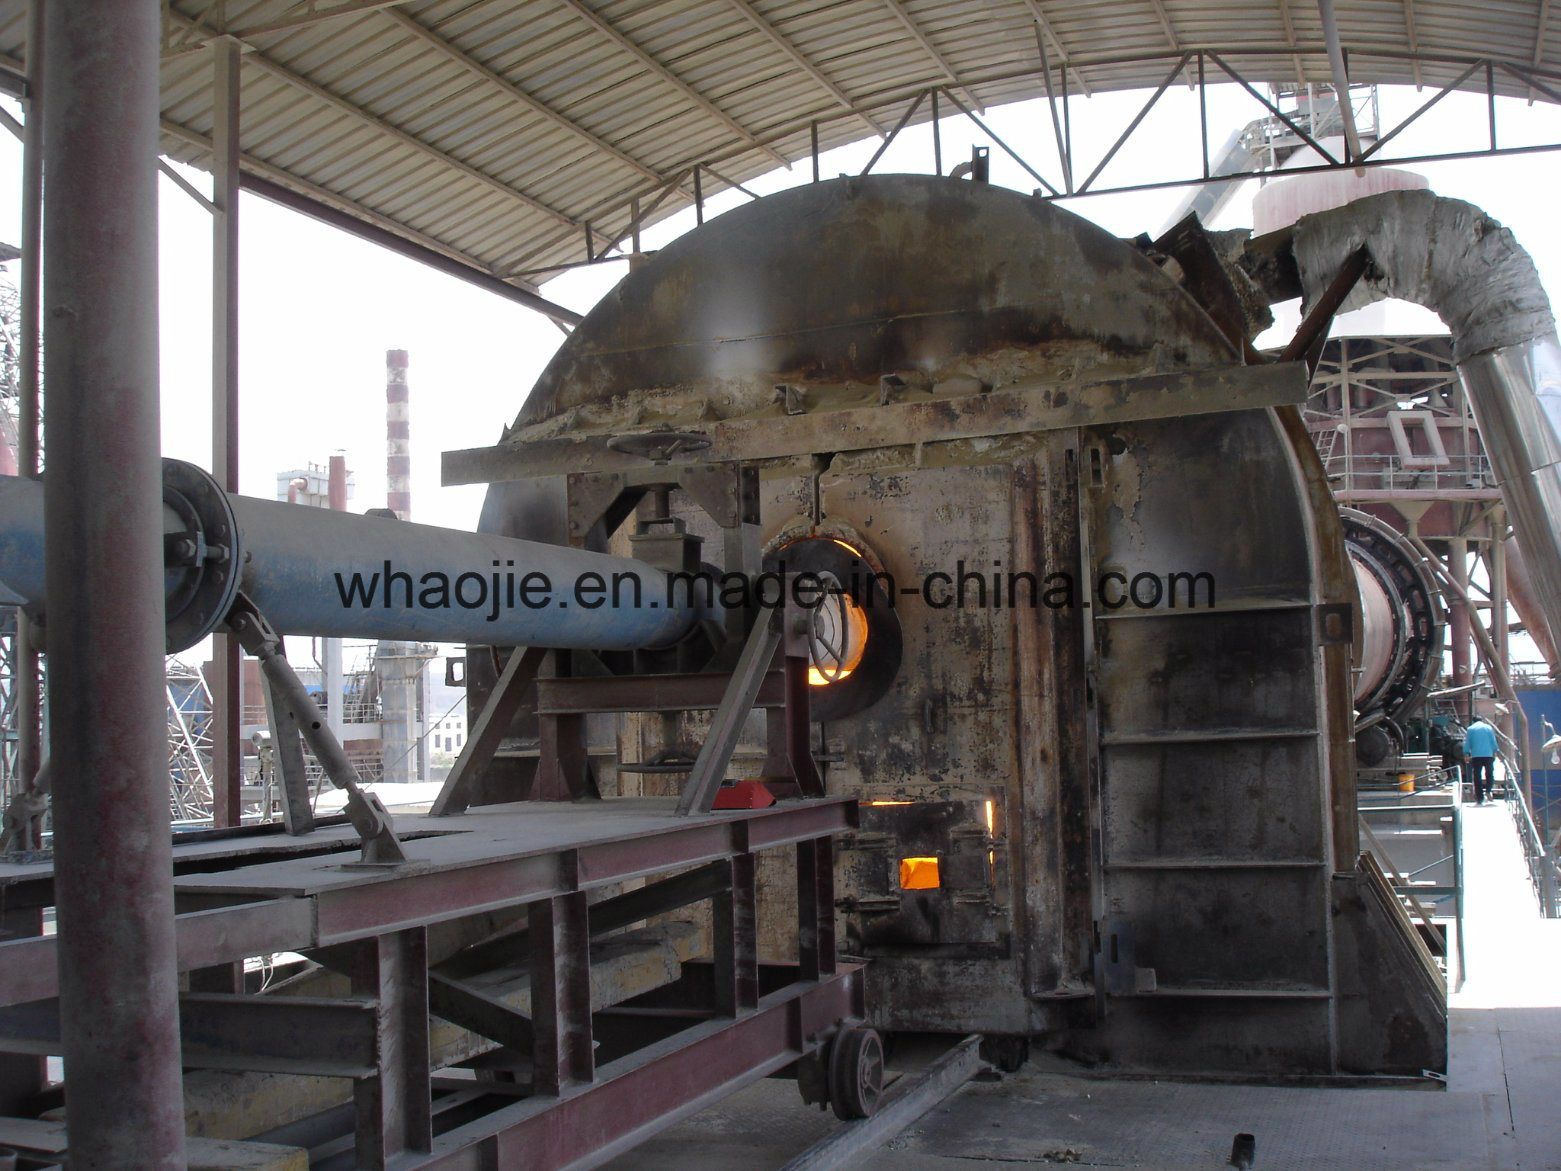 Petroleum Coke Burners Used in Lime or Cement Industry